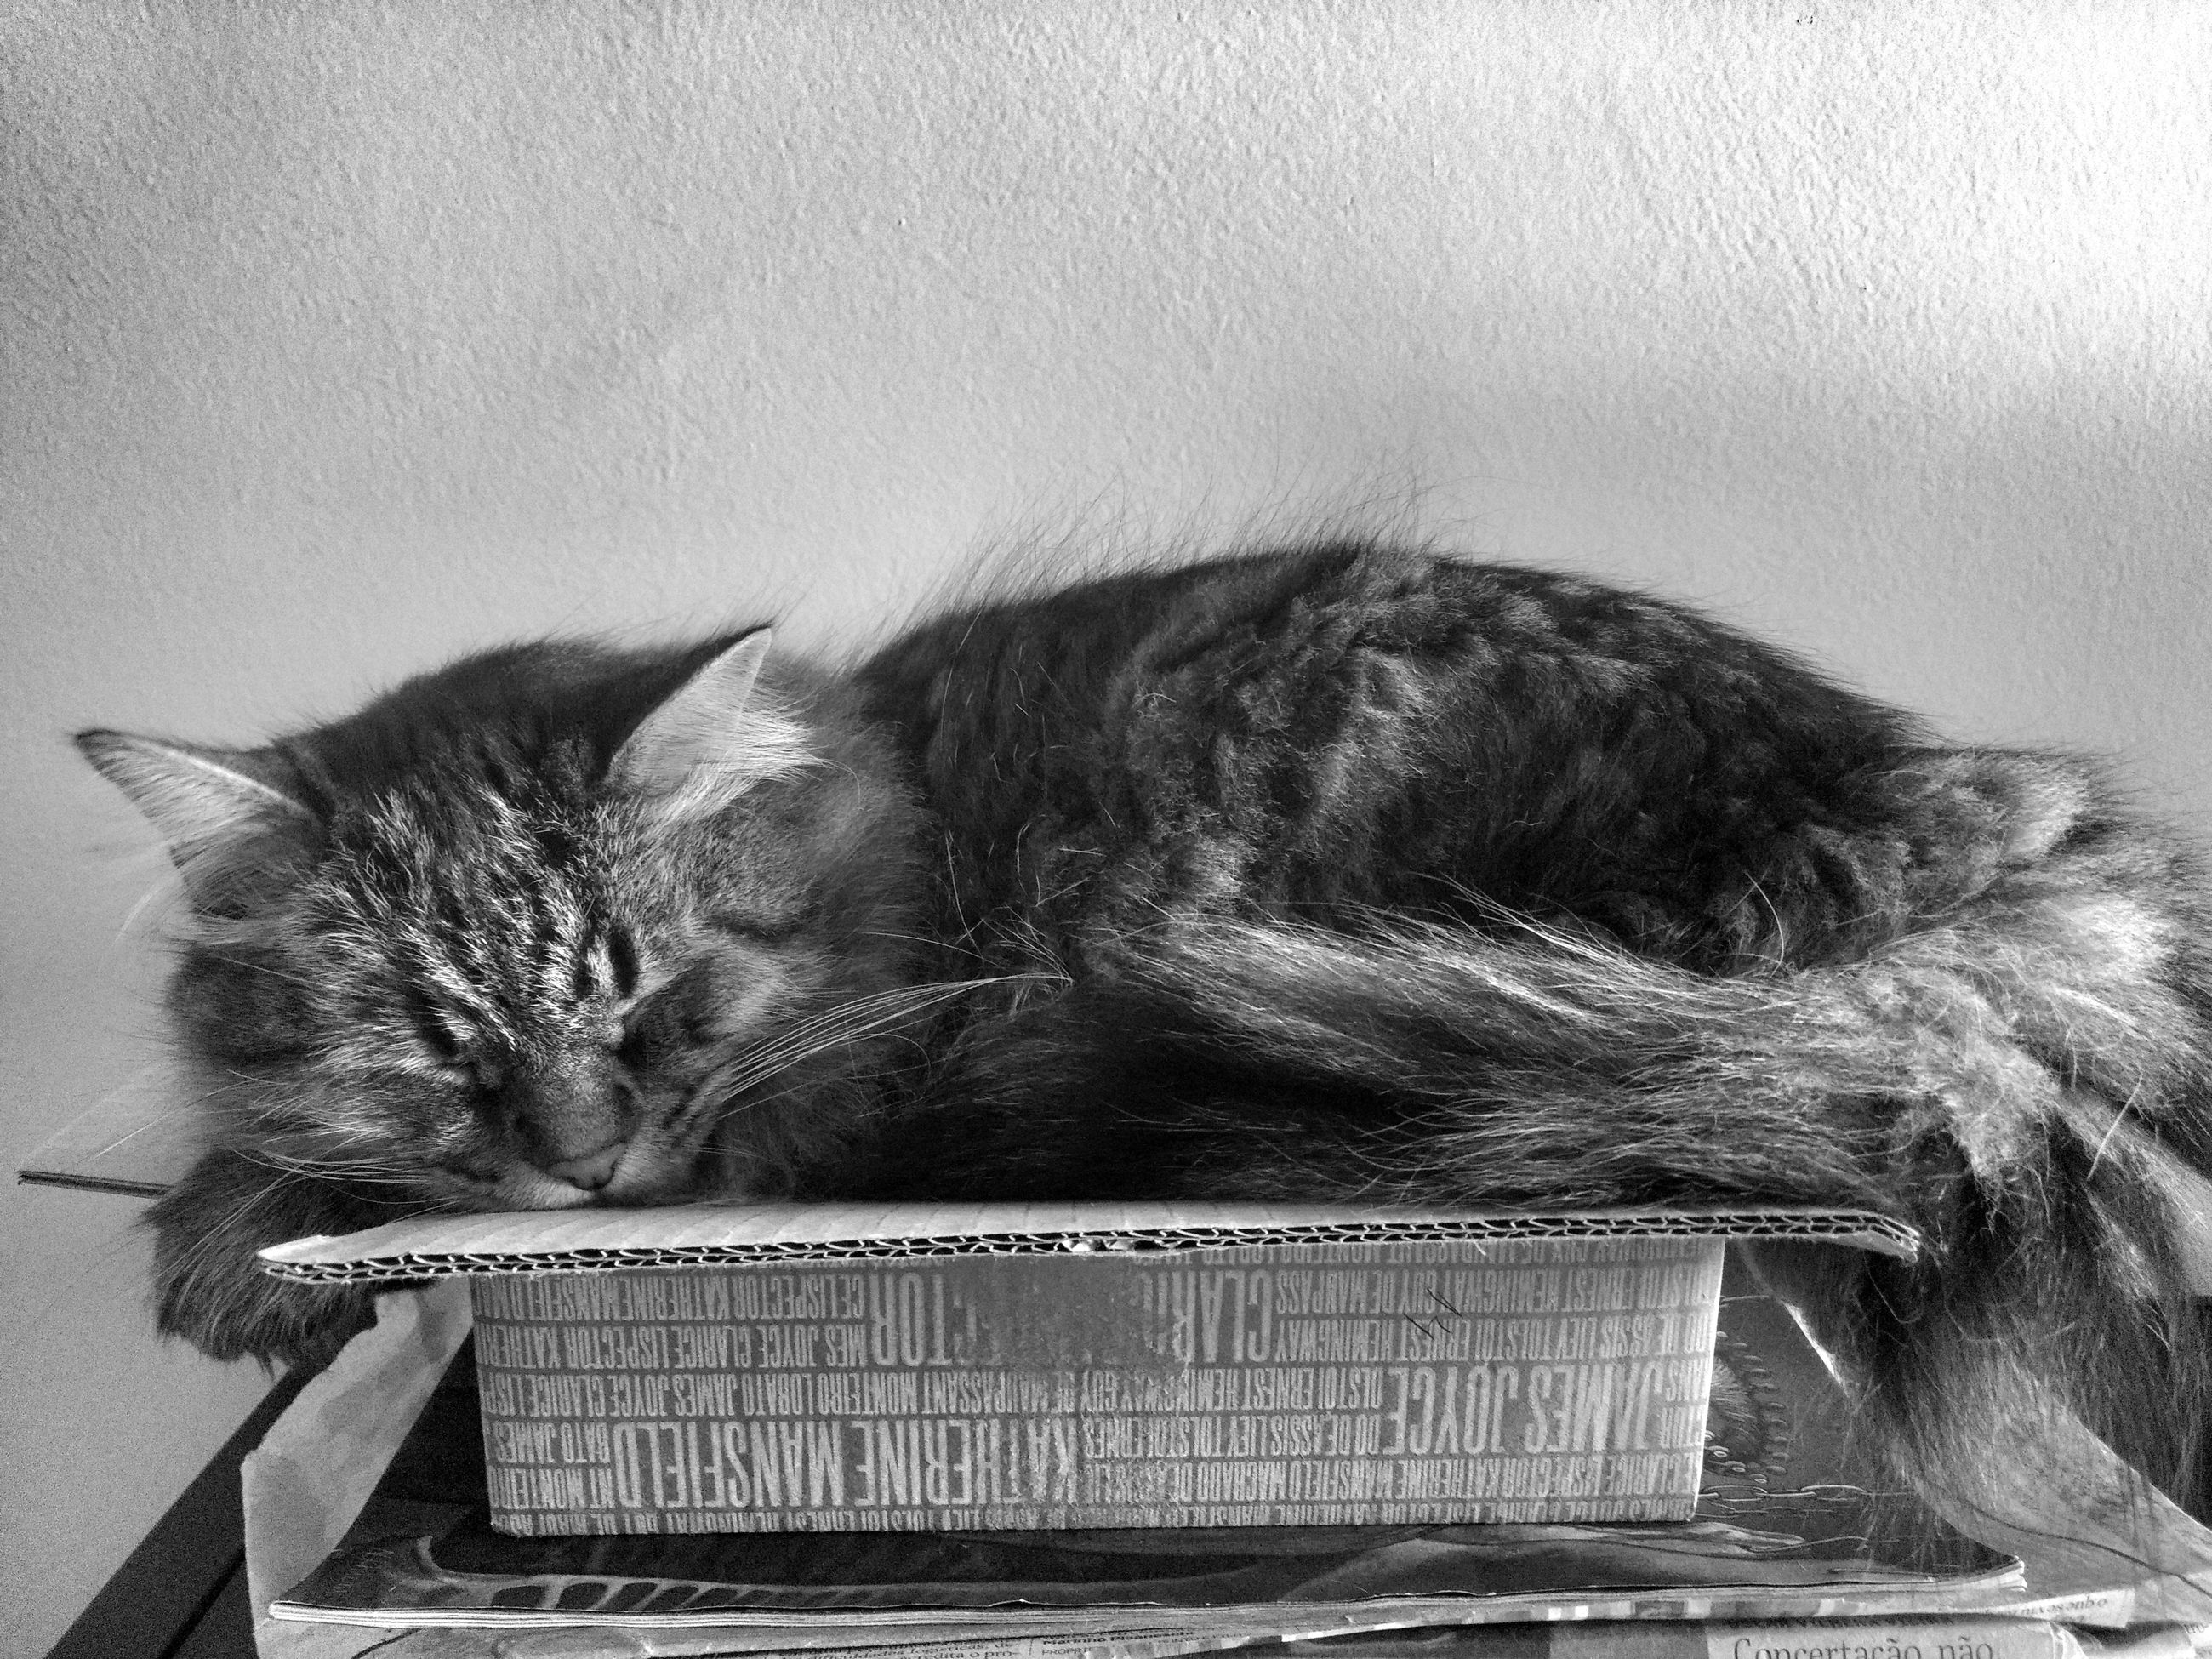 domestic cat, pets, domestic animals, indoors, animal themes, feline, mammal, cat, one animal, no people, relaxation, close-up, day